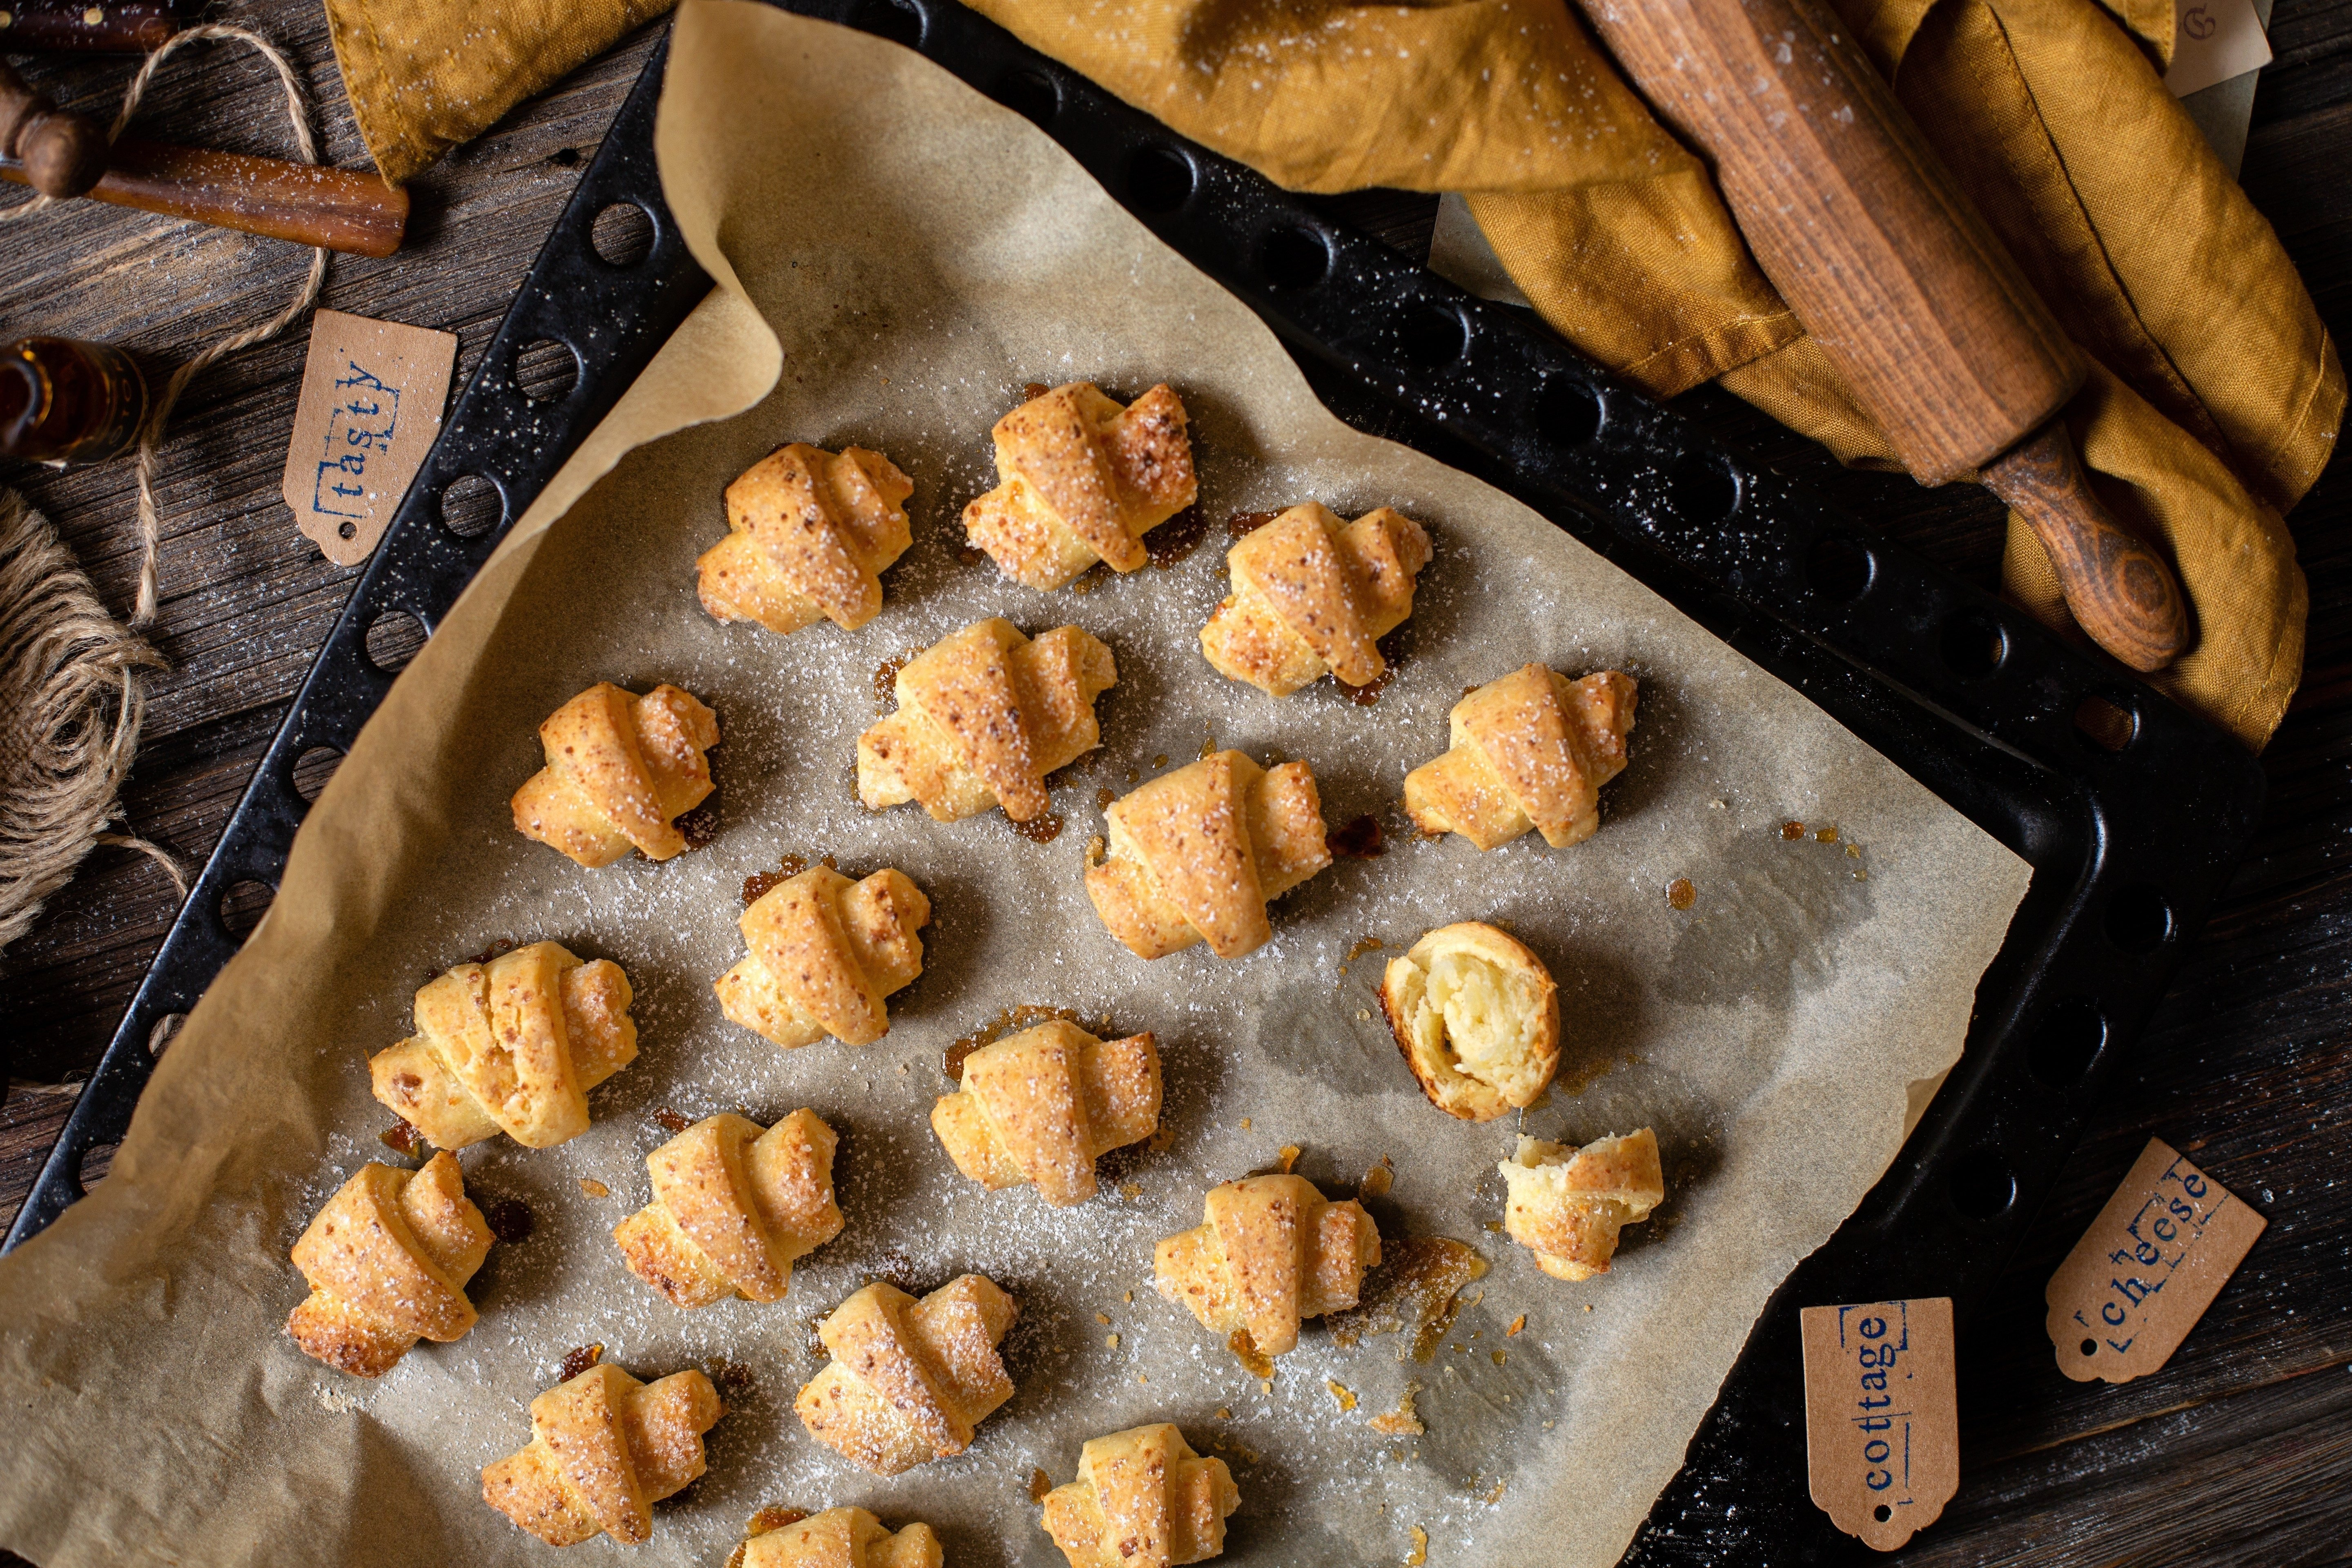 overhead shot of tasty baked rolled or bagels cookies on baking tray with parchment on rustic wooden table with rolling pin and orange napkin